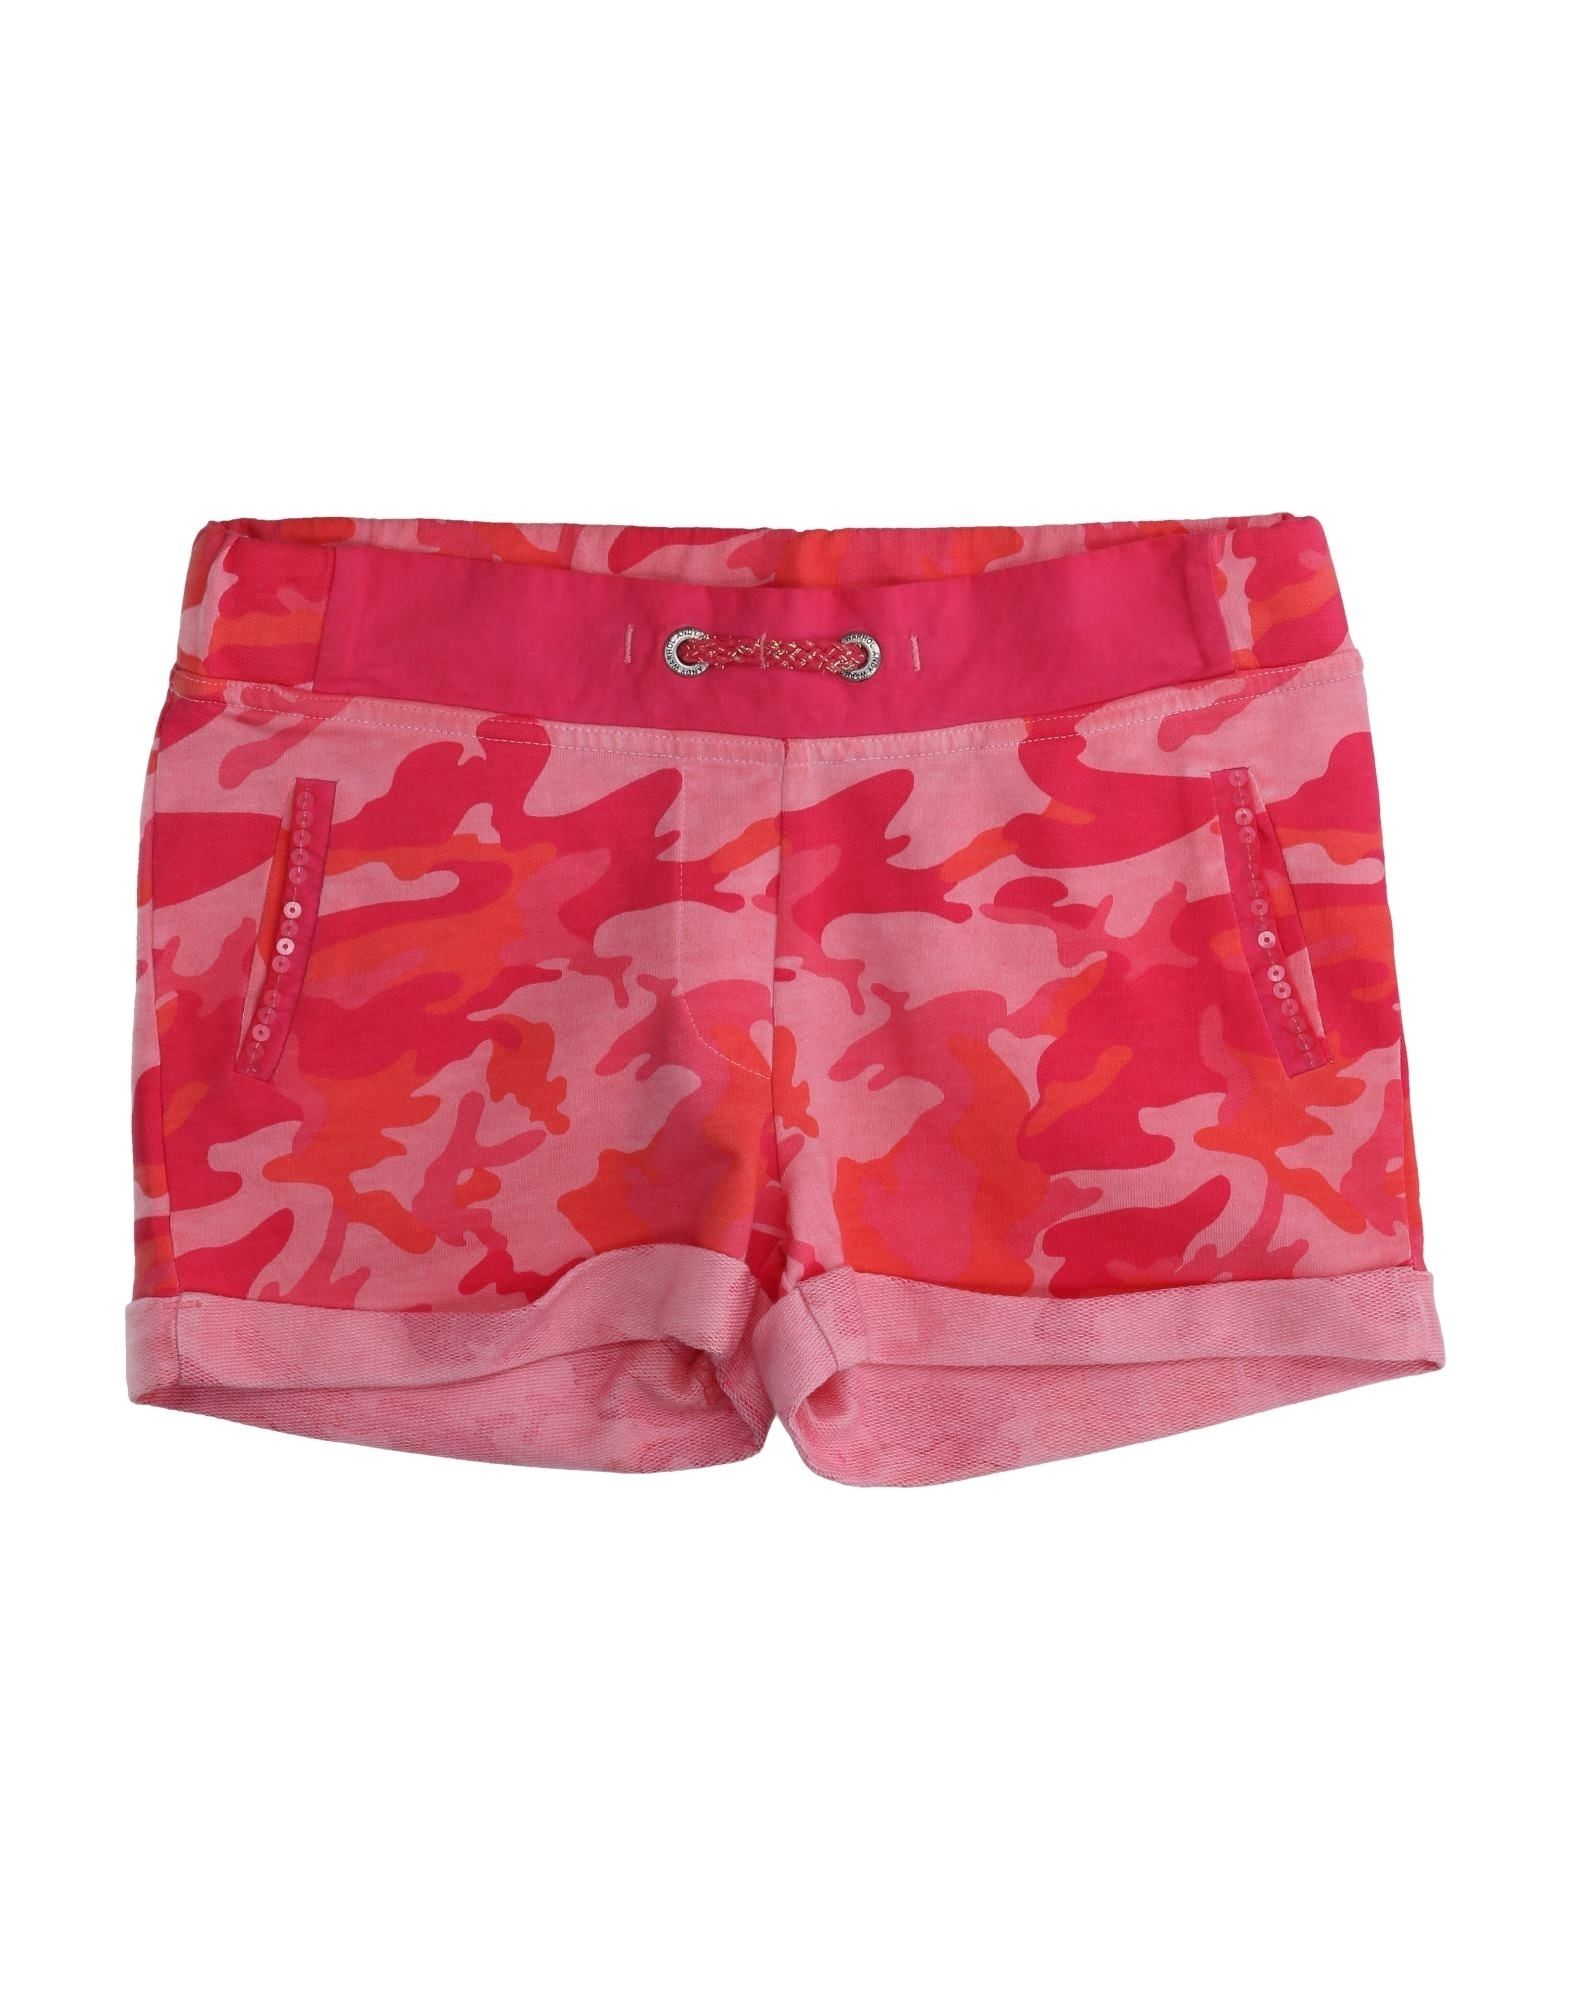 Pepe Jeans Kids' Shorts In Red